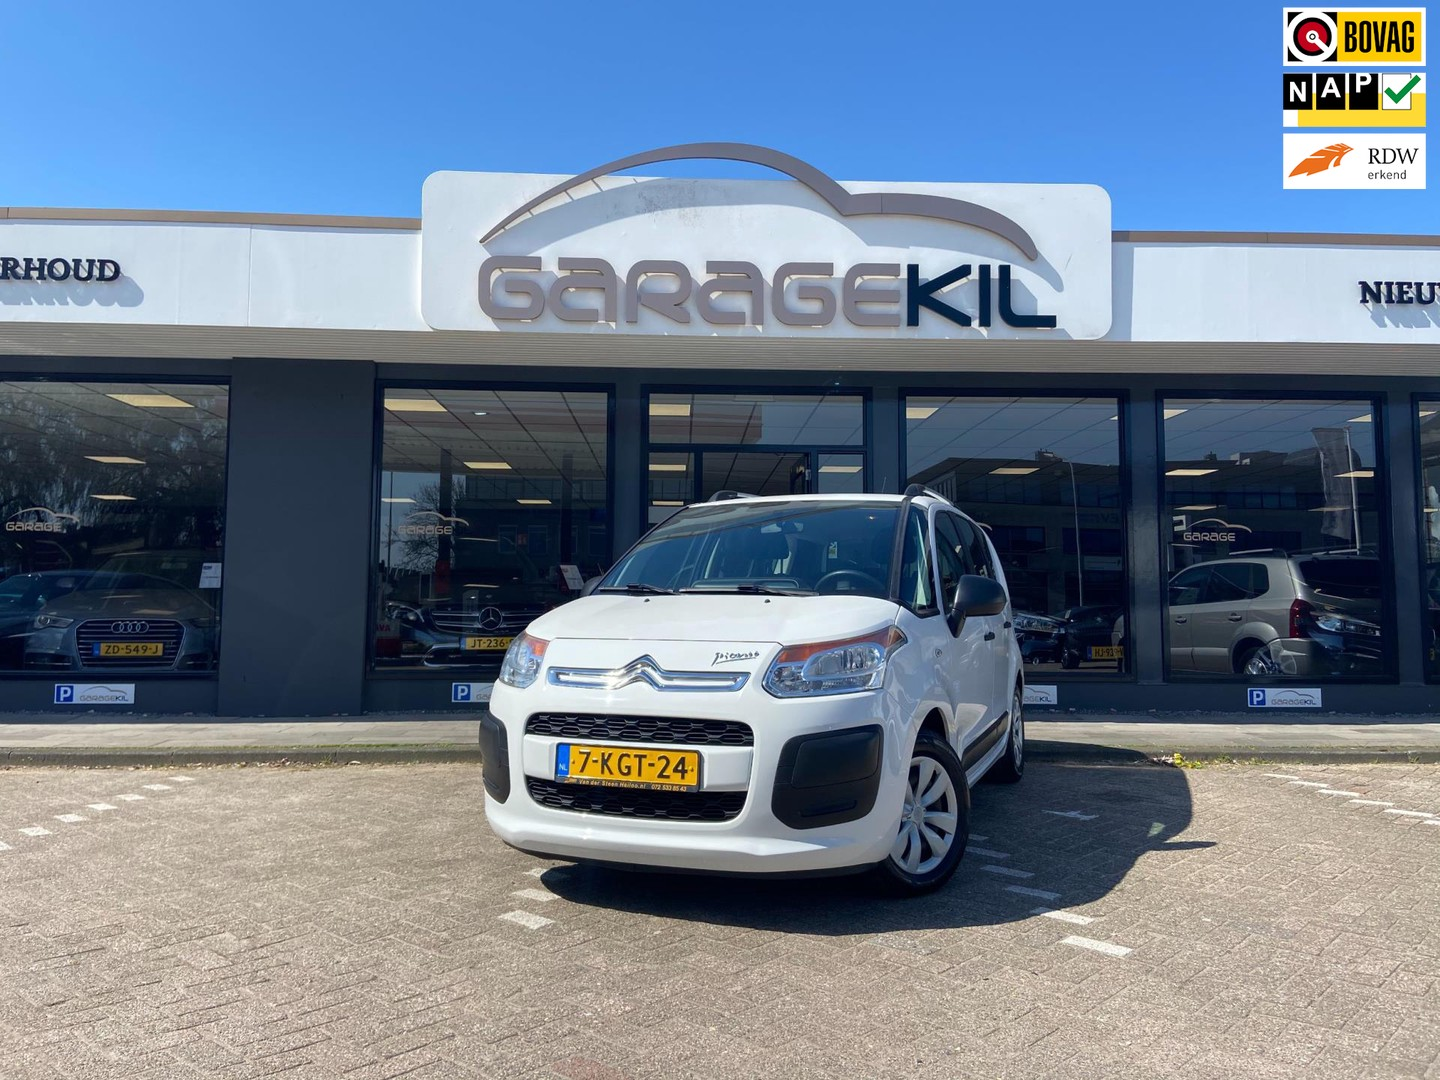 Citroën C3 picasso 1.4 vti attraction, orig. nl, 2de eig. trekhaak, zeer nette auto